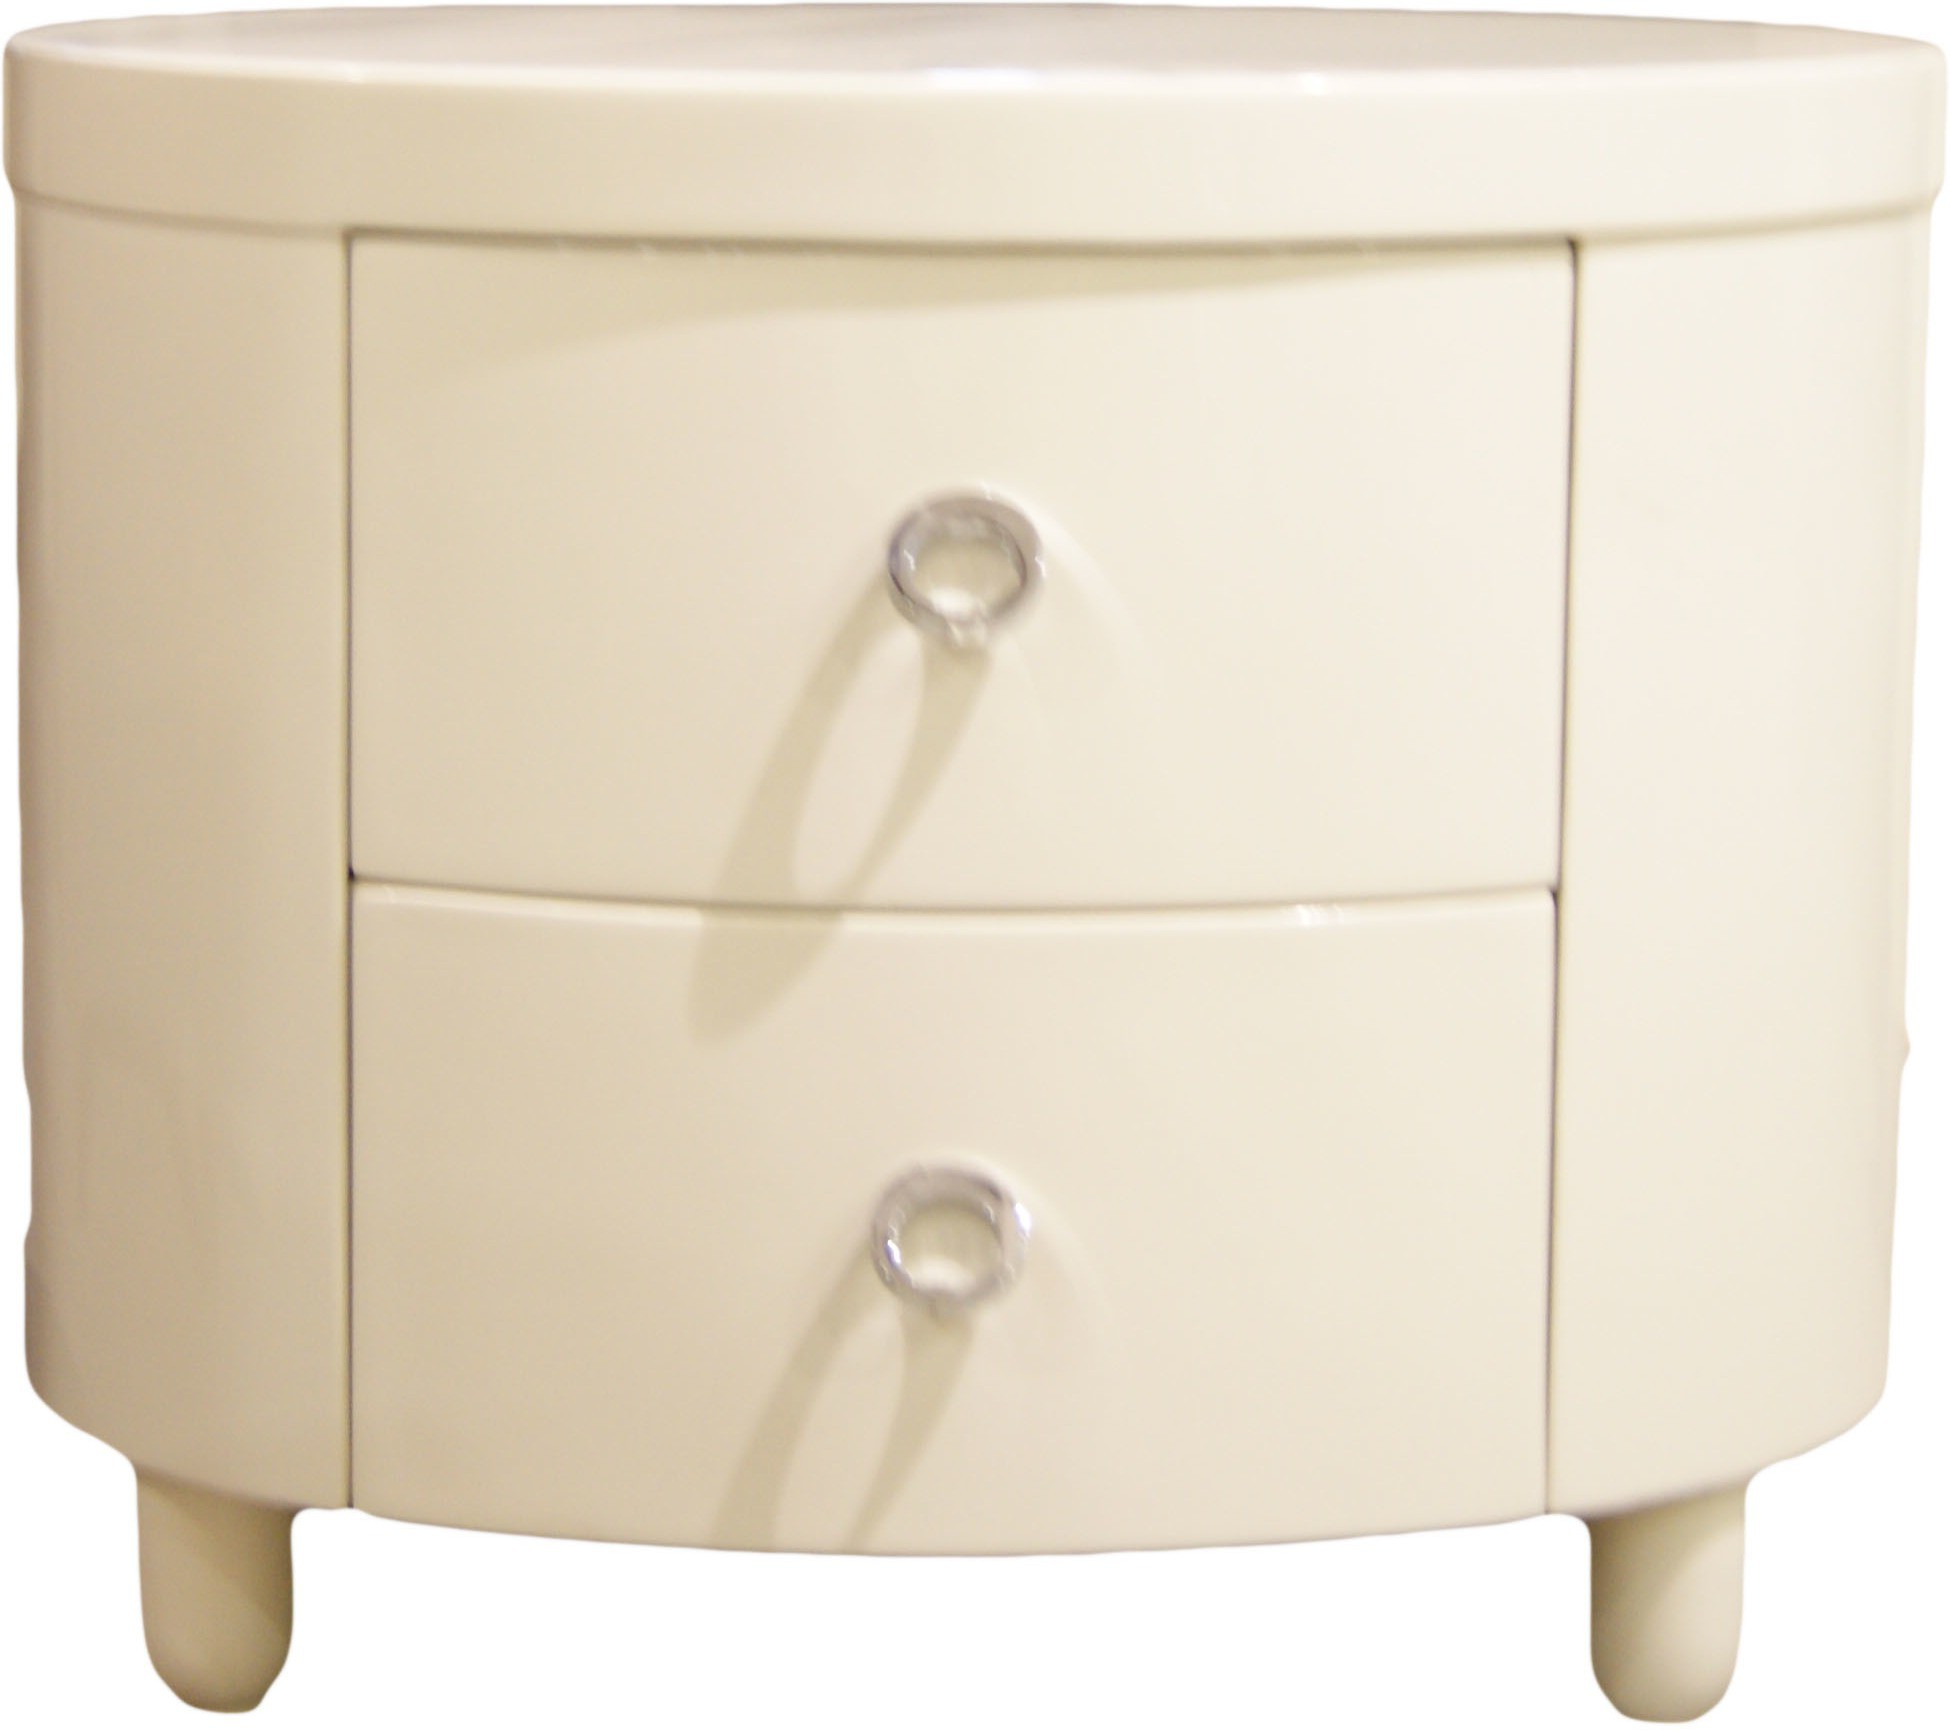 View Kp Wood Krafts c 088 Engineered Wood Bedside Table(Finish Color - Off white) Furniture (Kp Wood Krafts)